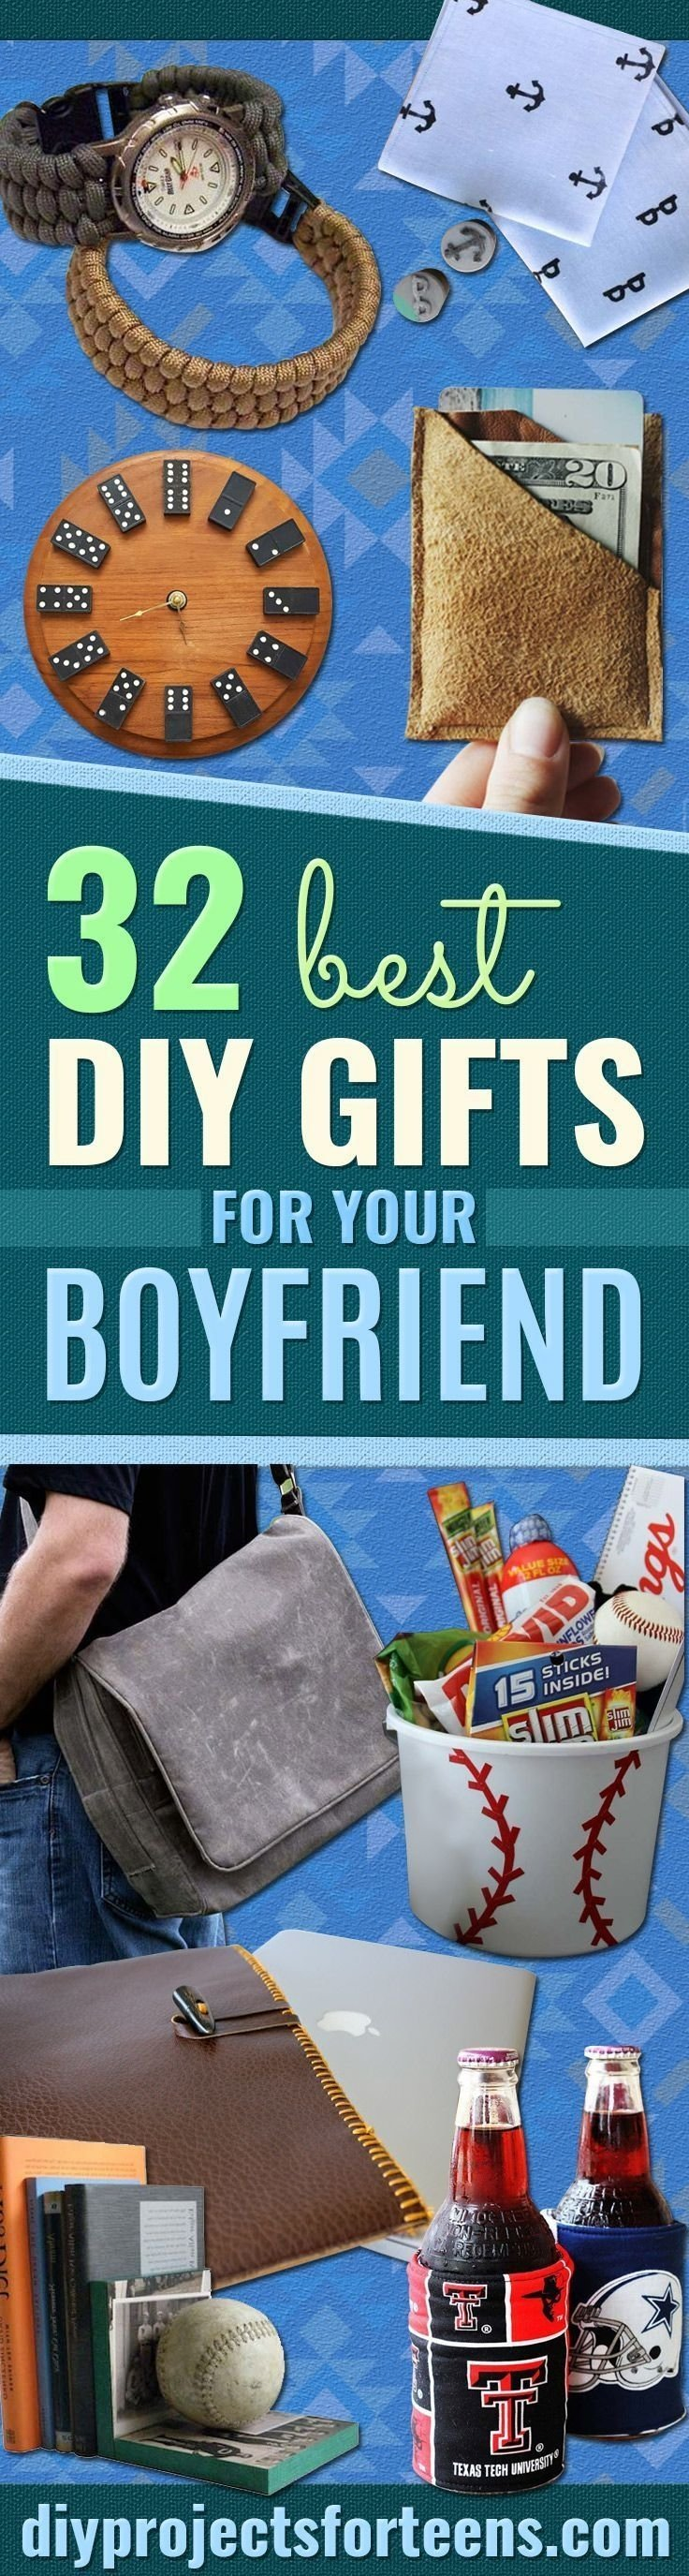 933 best diy gifts for teens images on pinterest | hand made gifts